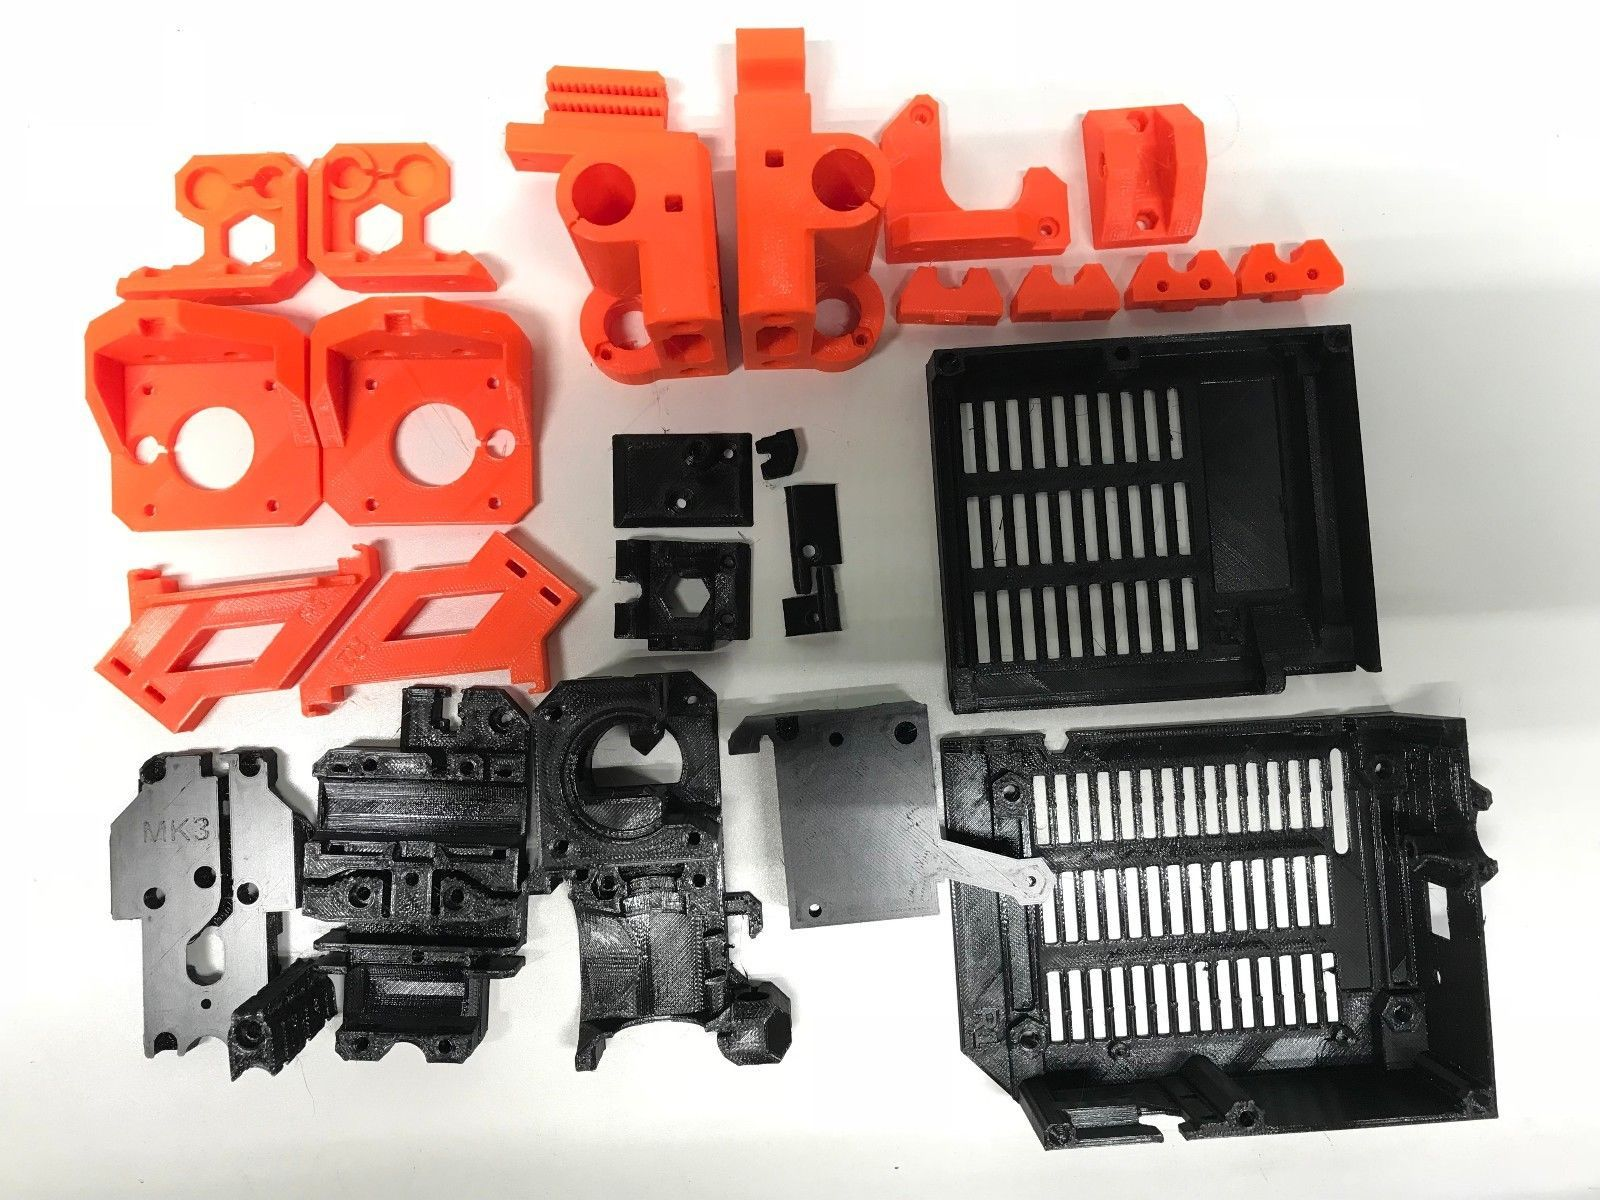 photo about Prusa Printable Parts identified as Prusa i3 MK2 MK2s in the direction of MK3 up grade released components In just Prusa